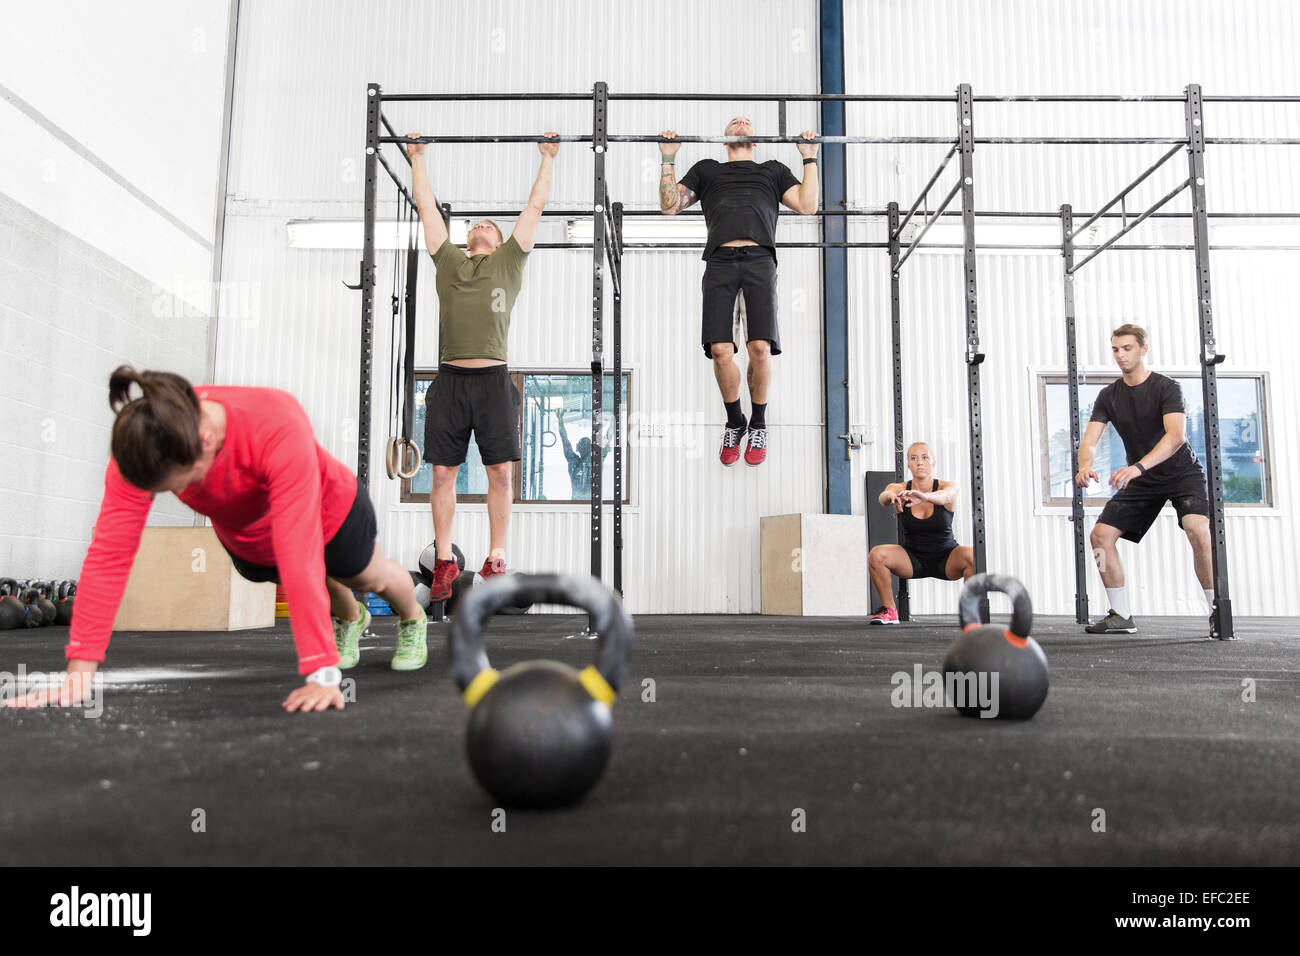 Crossfit group trains different exercises - Stock Image